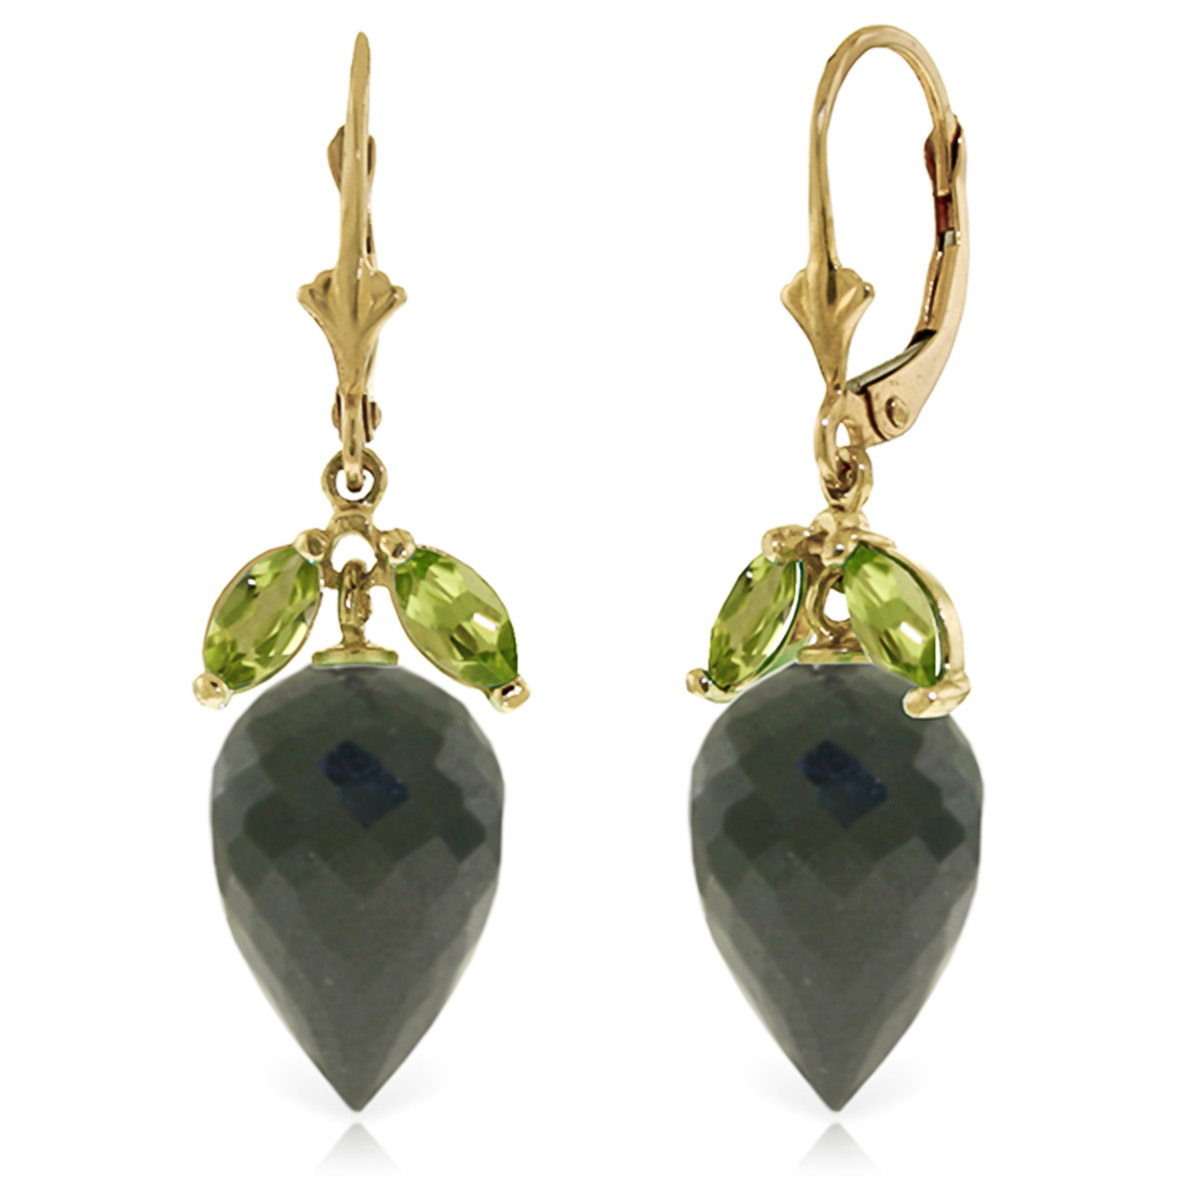 Black Spinel & Peridot Drop Earrings in 9ct Gold